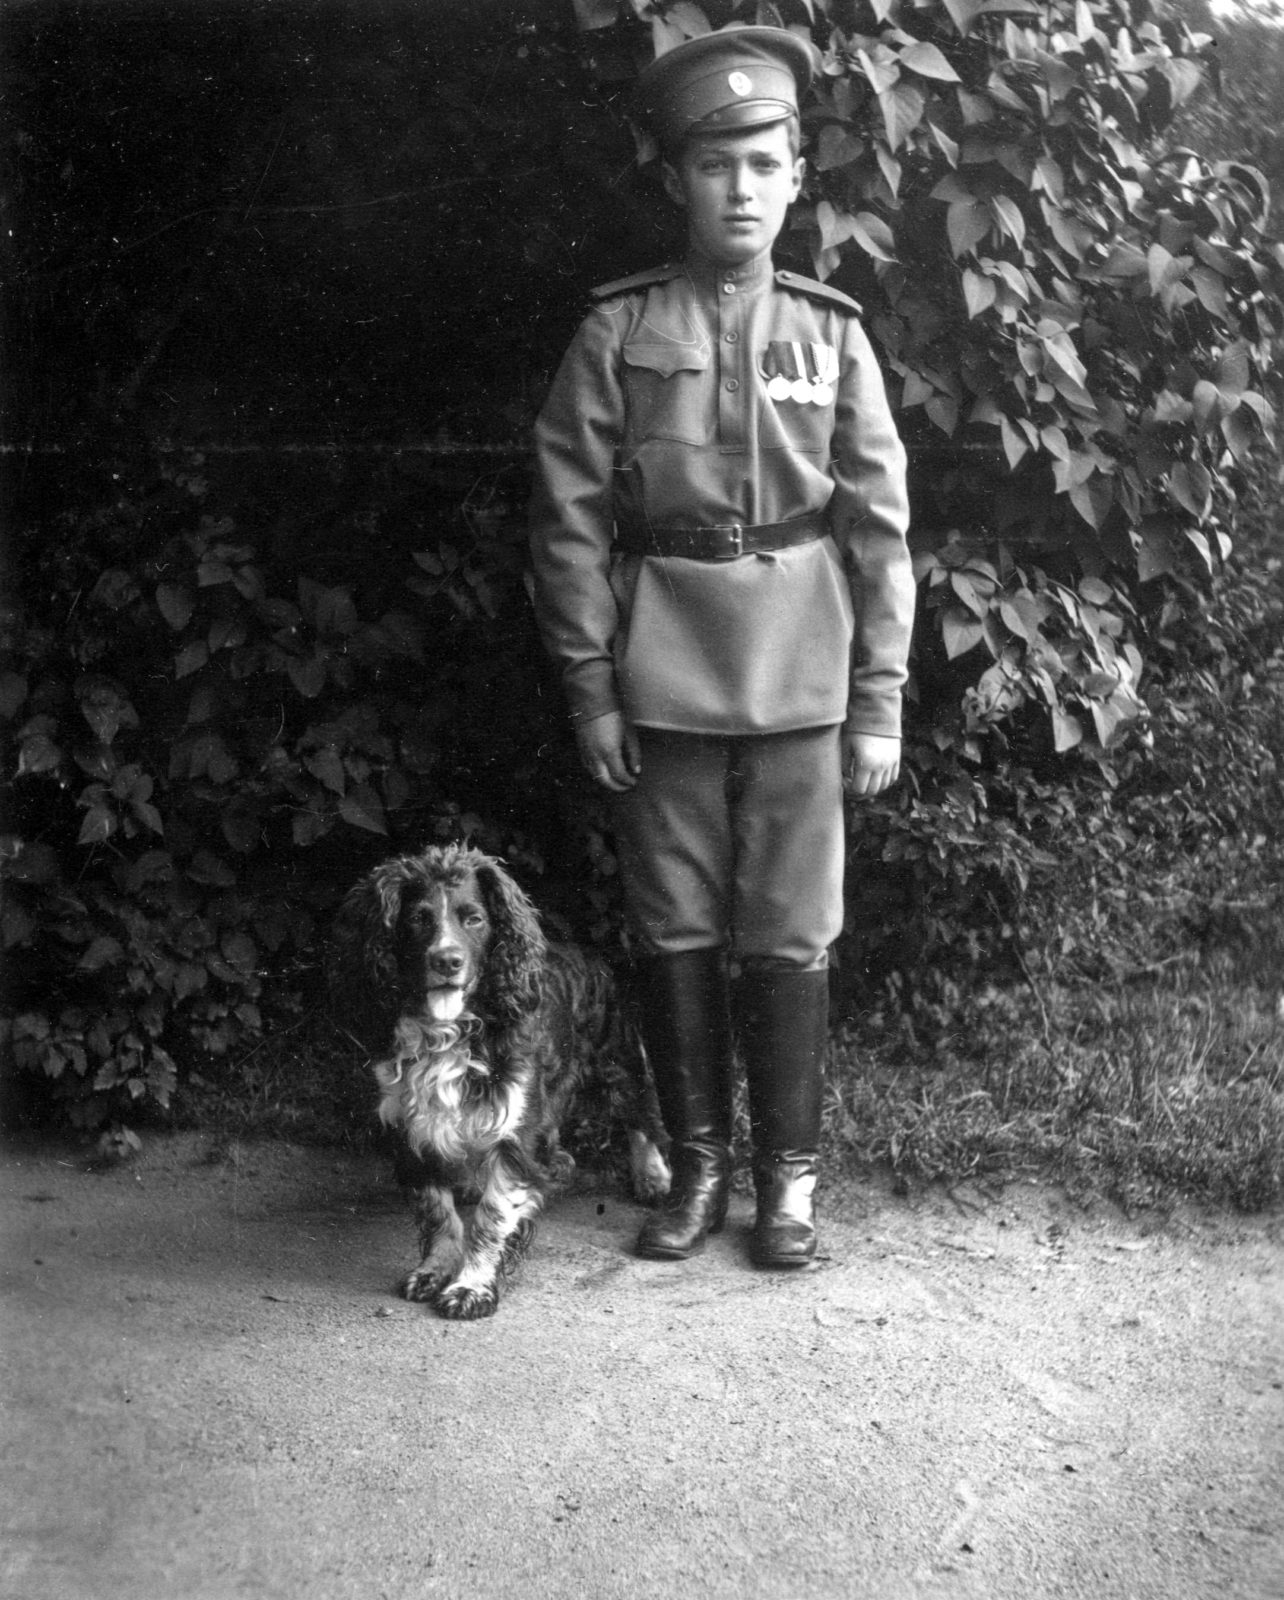 Tsesarevitch Alexei with his dog Joy